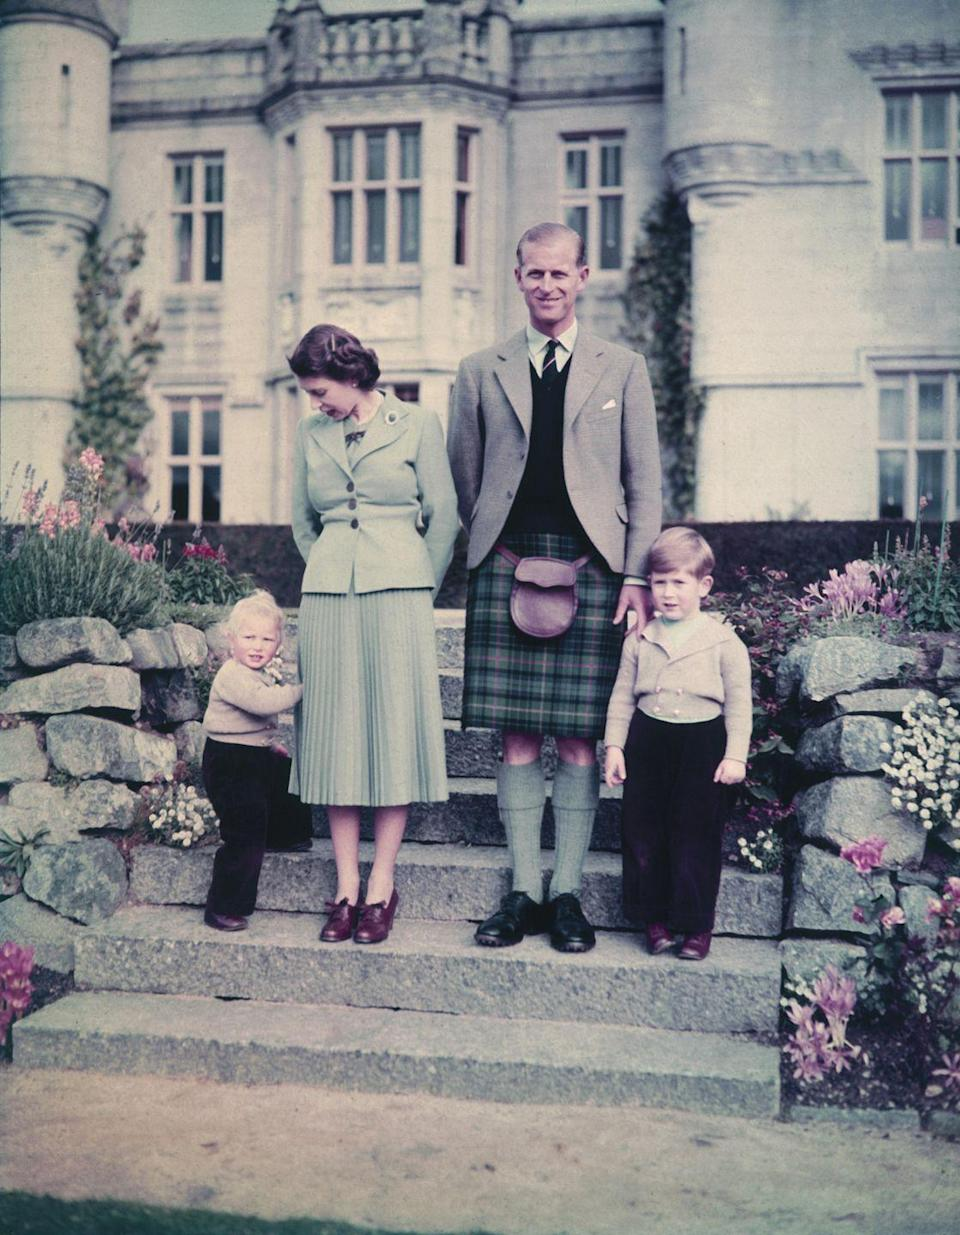 """<p>Queen Elizabeth and Prince Philip with their two young children, Princess Anne and Prince Charles, outside <a href=""""https://www.goodhousekeeping.com/uk/news/a578858/balmoral-everything-you-need-to-know-about-the-queens-scottish-retreat/"""" rel=""""nofollow noopener"""" target=""""_blank"""" data-ylk=""""slk:Balmoral Castle"""" class=""""link rapid-noclick-resp"""">Balmoral Castle</a> in 1952.</p>"""